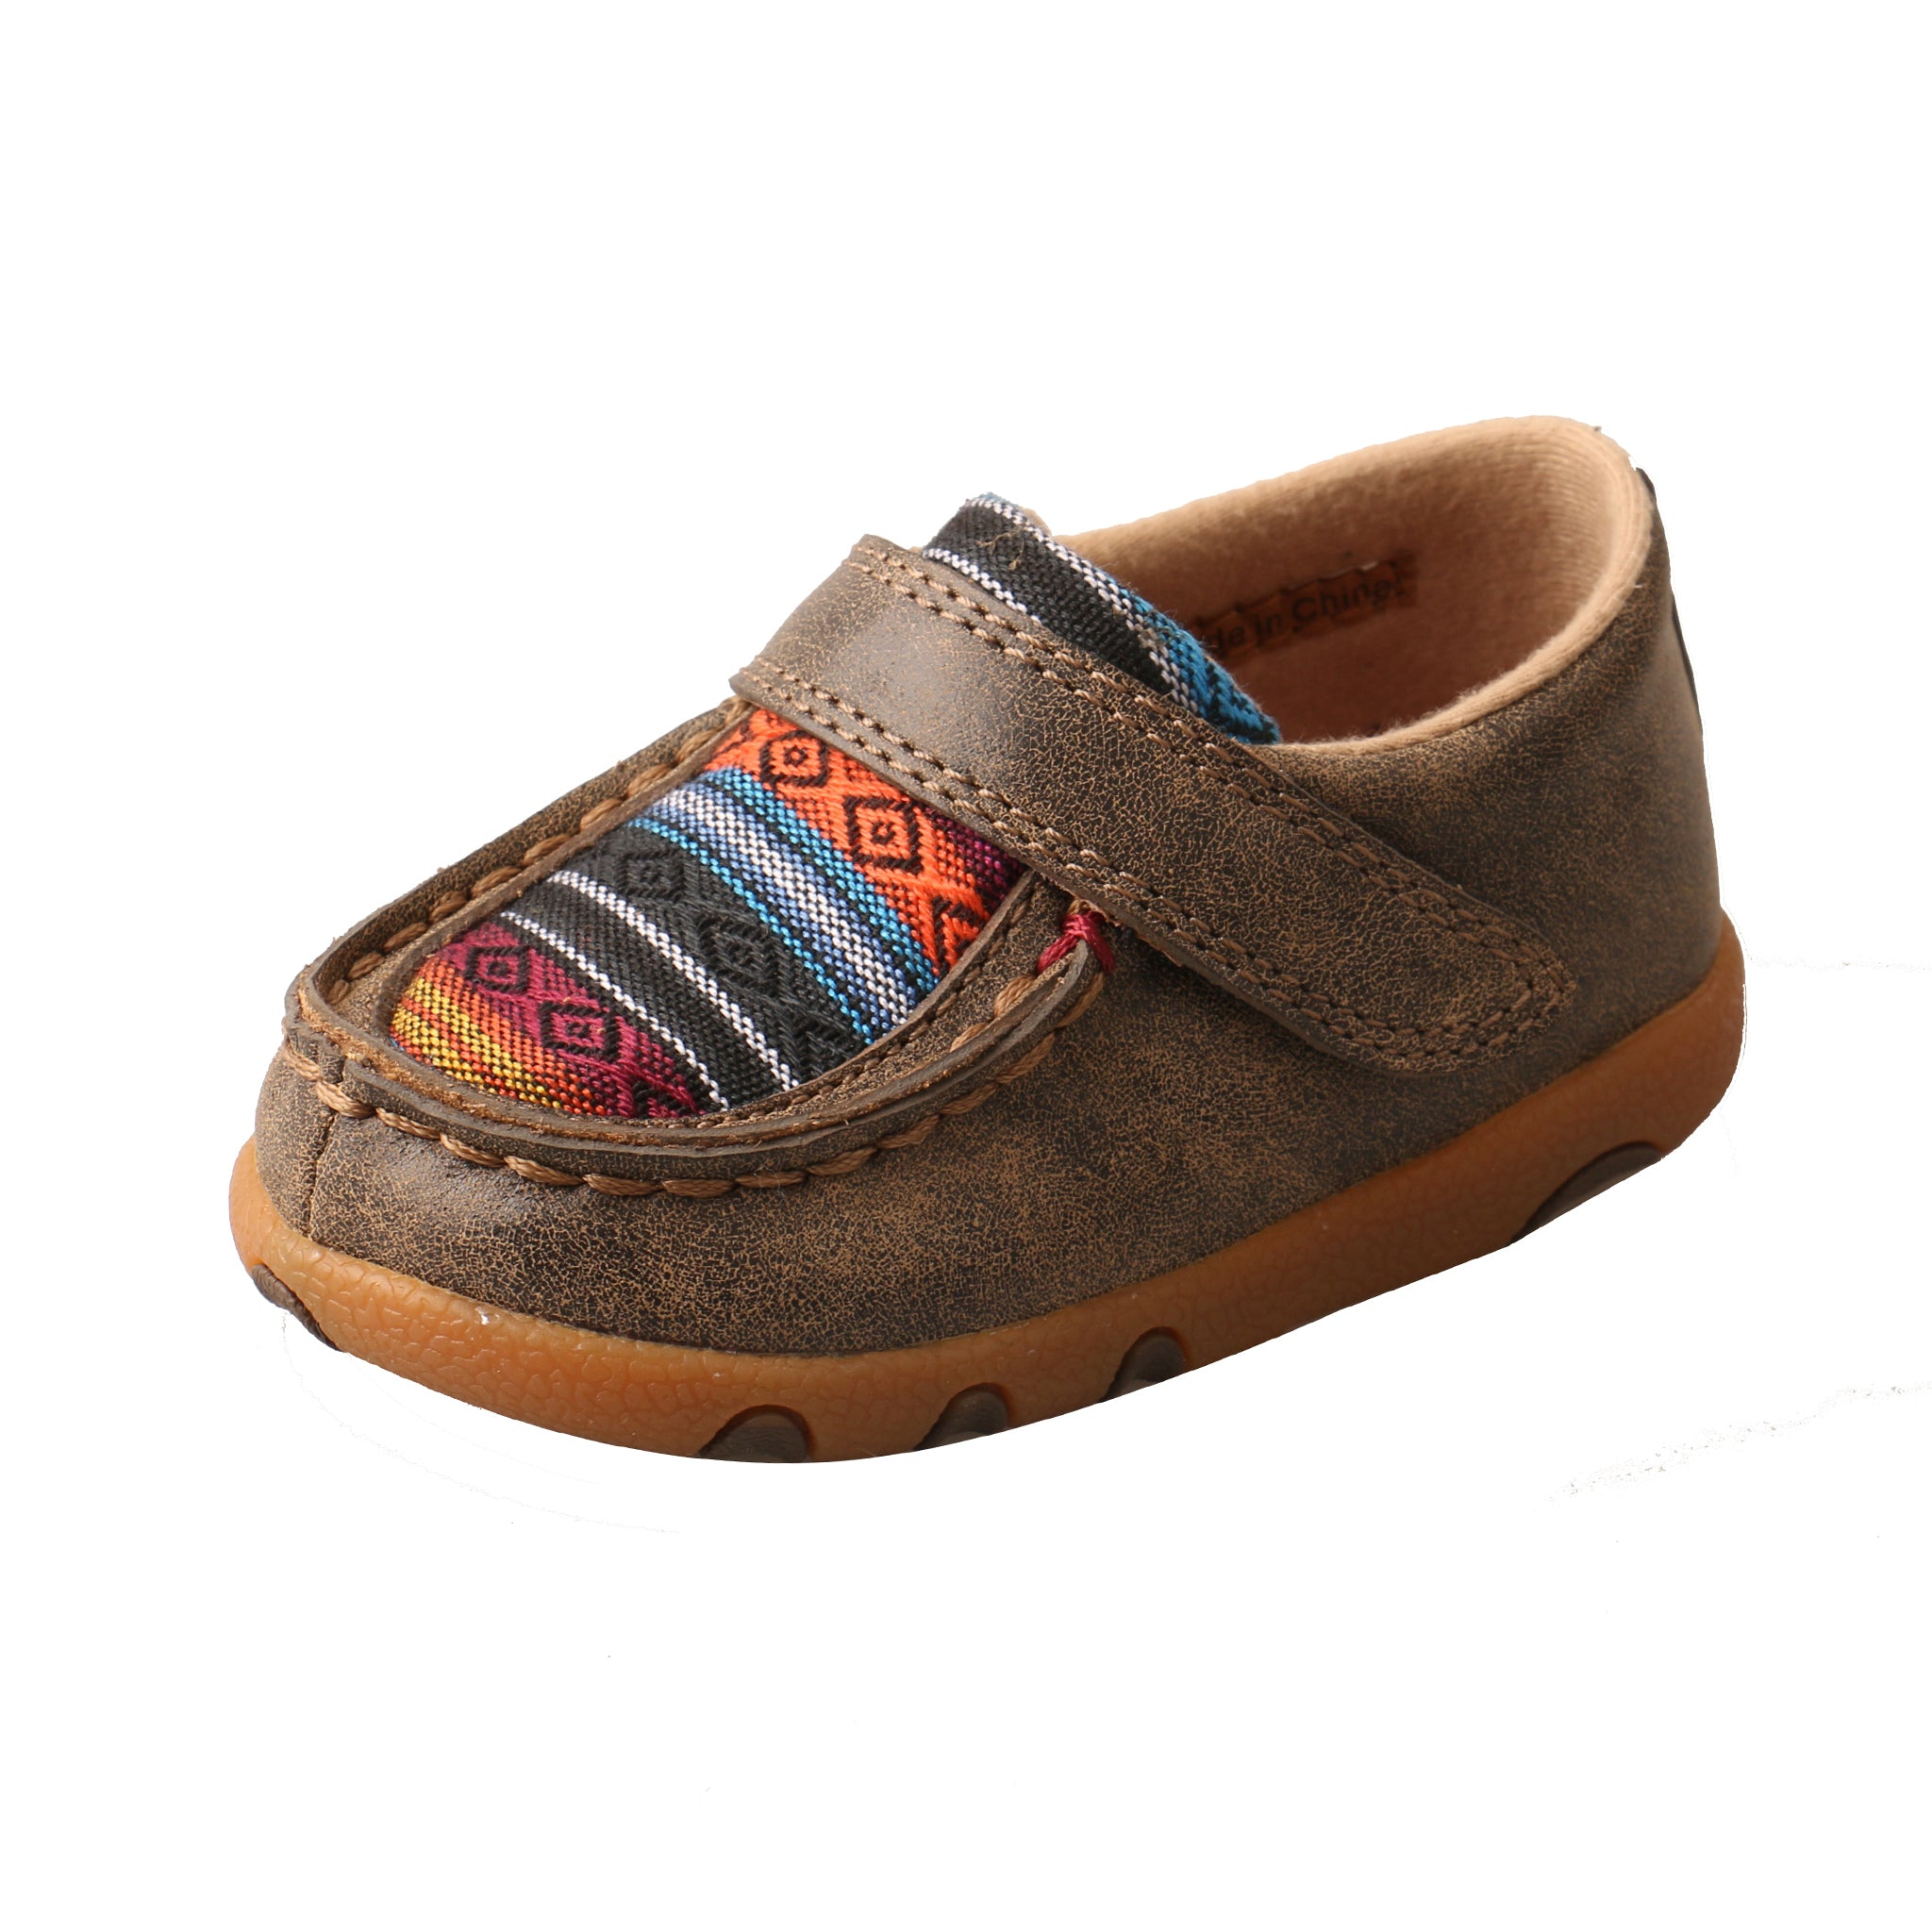 Infant Driving Moccasin - Bomber / Multi Serape